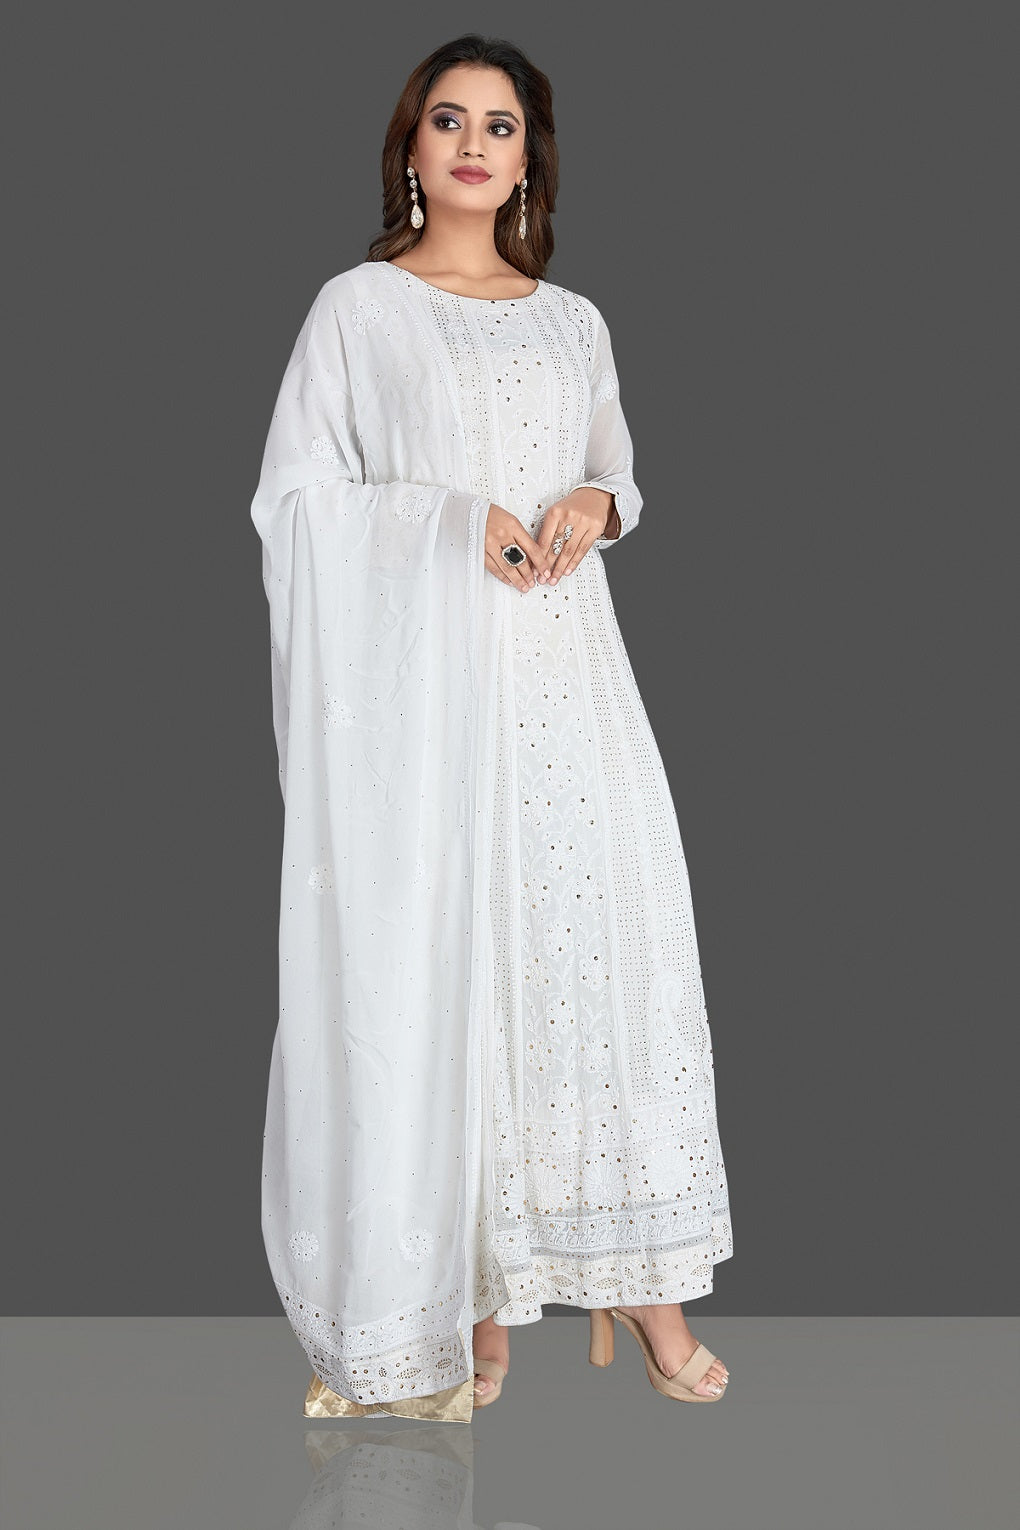 Buy gorgeous white georgette Lucknowi chikankari work Anarkali suit online in USA. Flaunt your sartorial choice with beautiful embroidered Anarkali, sharara suits, designer lehengas, designer gowns from Pure Elegance Indian saree store in USA.-full view